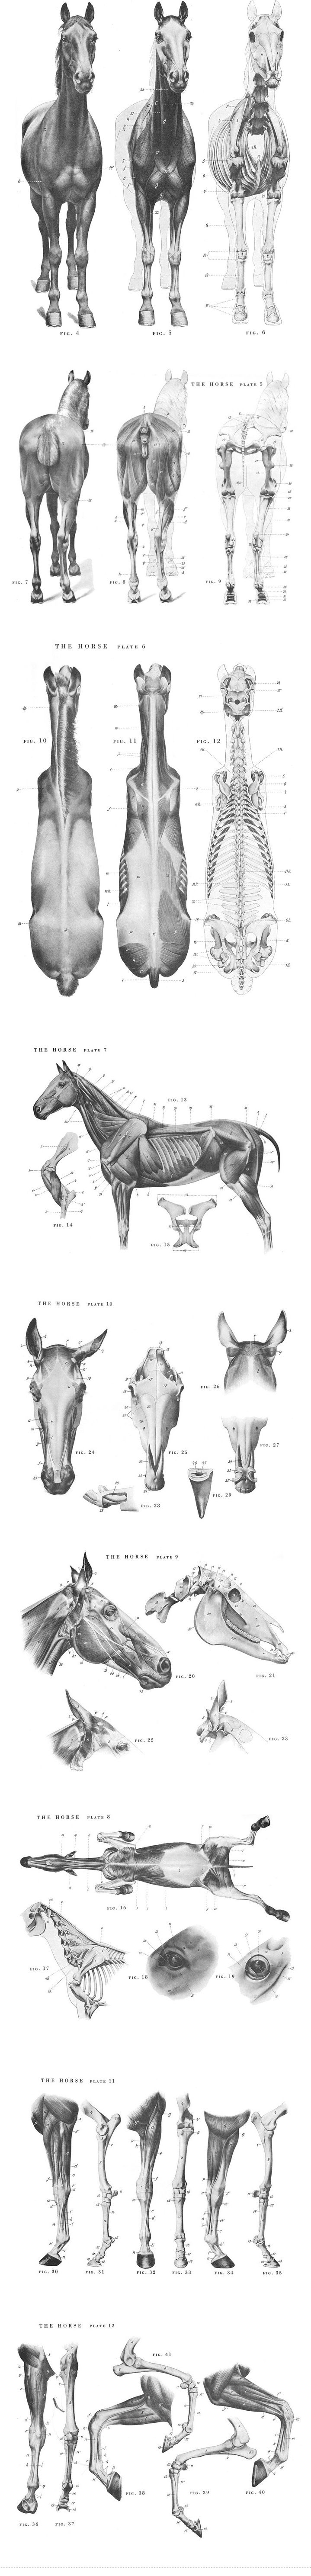 Hoof anatomy horse 3573546 - follow4more.info